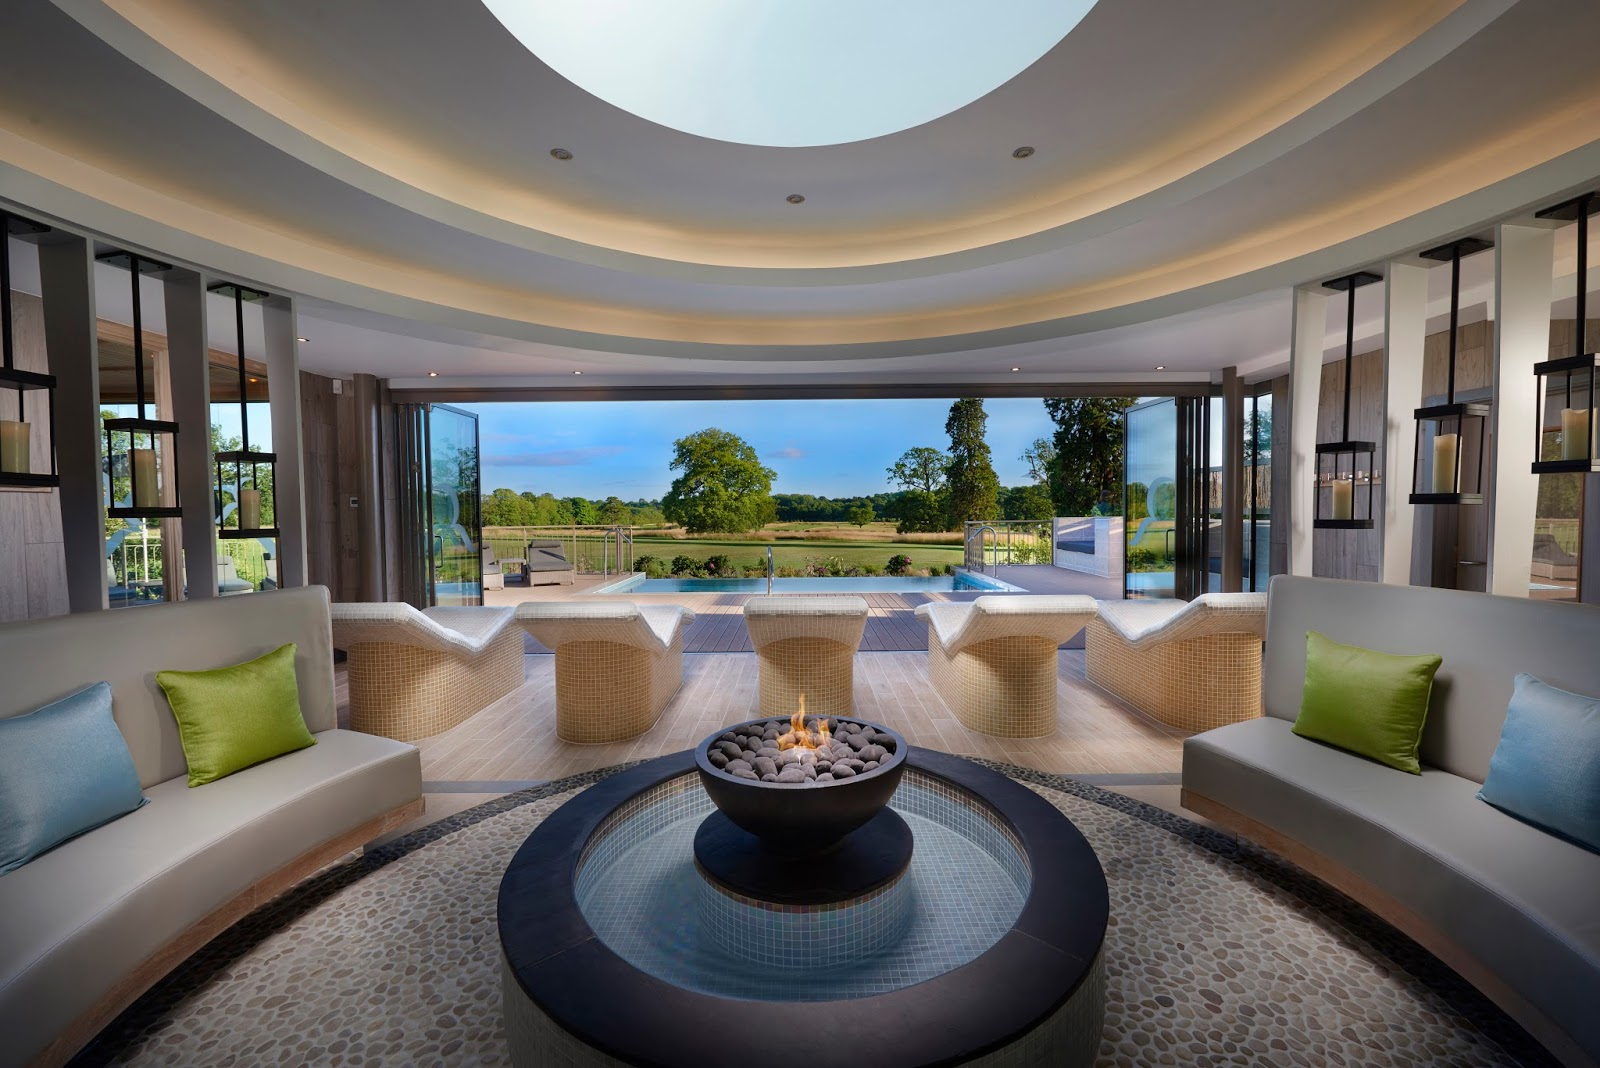 10 Father's Day Gift Ideas with a North East Twist - Rockliffe Hall Spa Garden